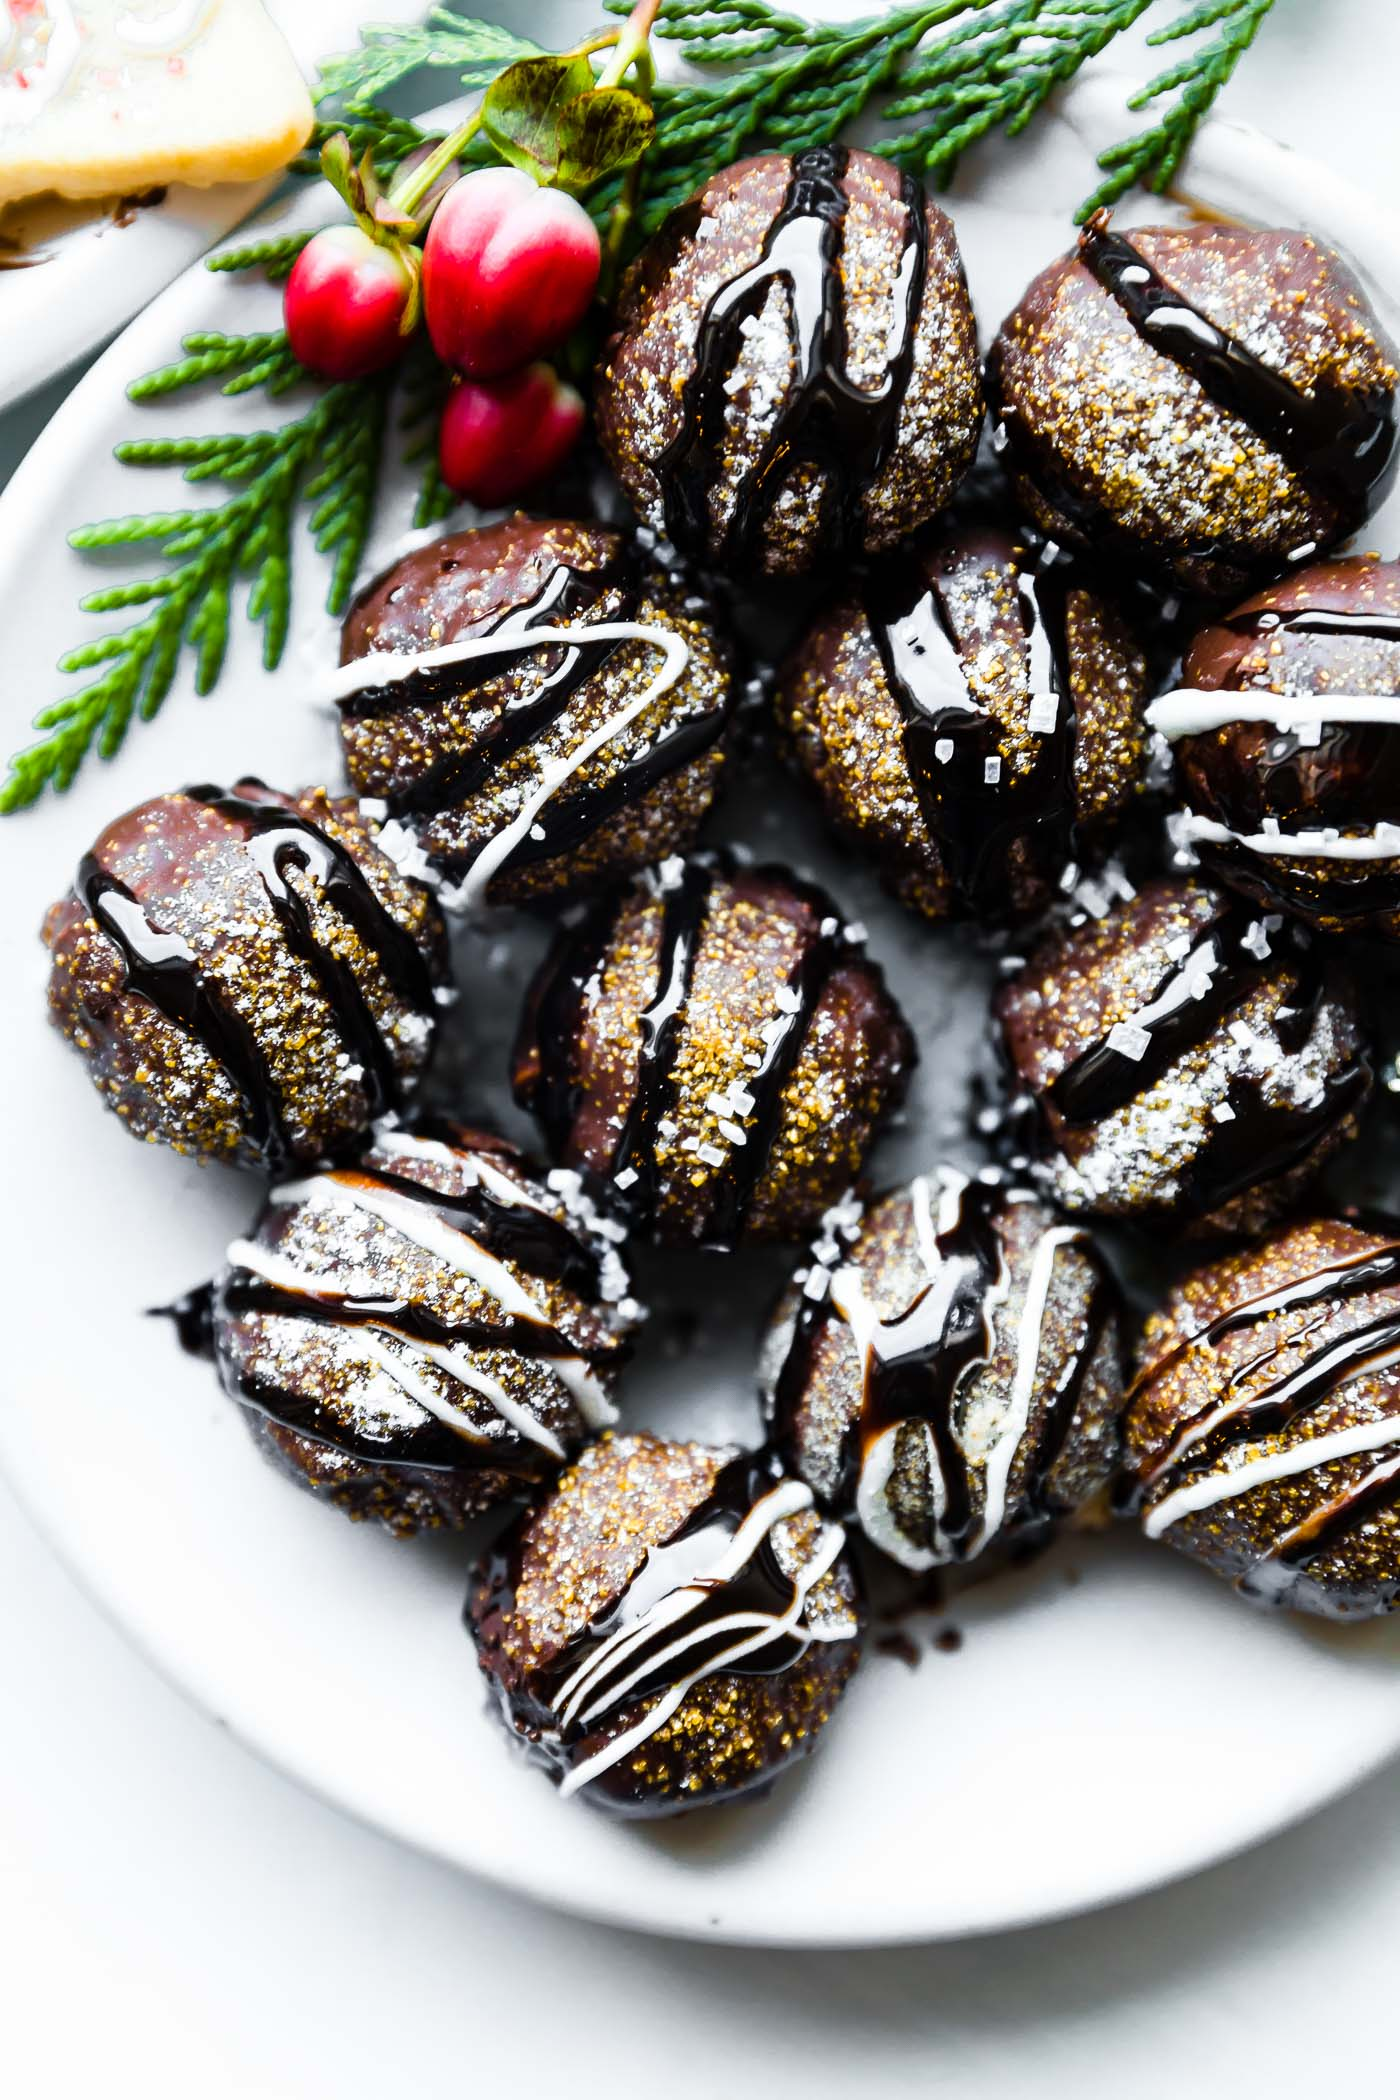 Make Cookies This Holiday Without Turning On Your Oven. It is possible with these no bake chocolate cookie truffles. Vegan friendly, gluten free, and made with just 5 ingredients or less. The crushed pretzel filling and extra dark chocolate drizzle topping is a must!